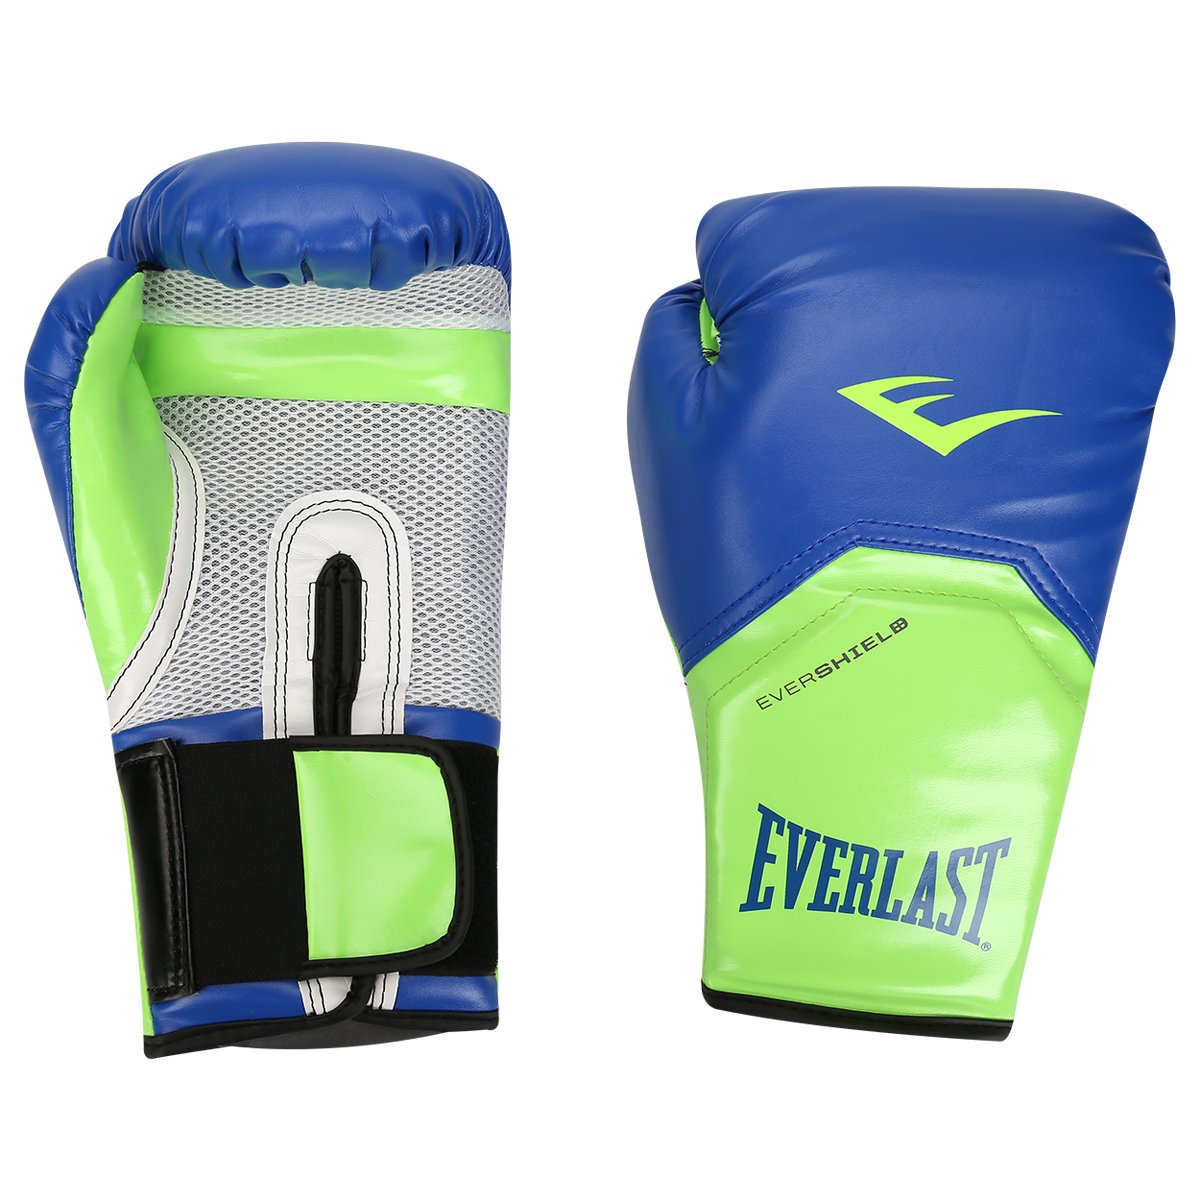 Luva de Boxe Muay Thai Everlast Pro Style Elite Training 14 oz 6263de5ff2efc